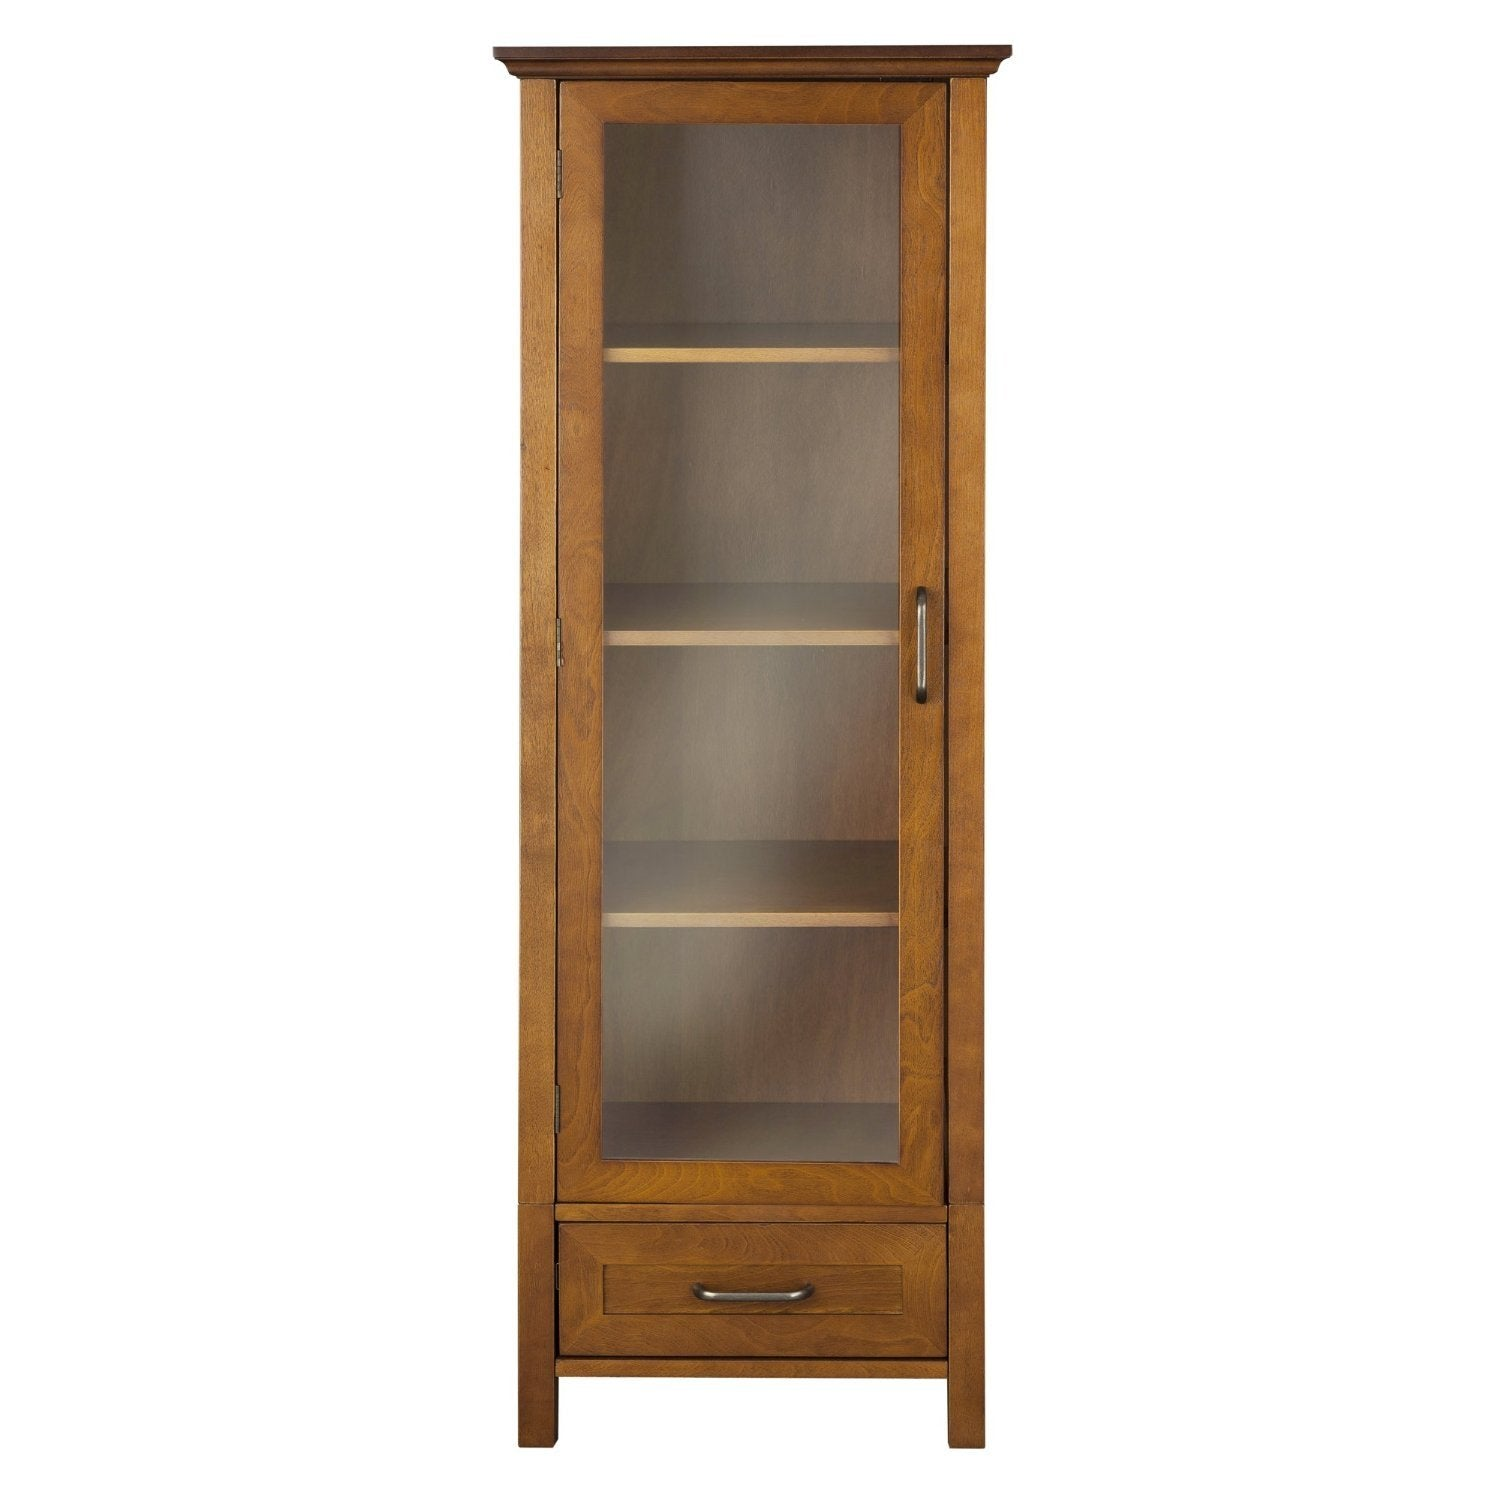 Oak Finish Linen Tower Glass Door Bathroom Storage Cabinet w/ Drawer